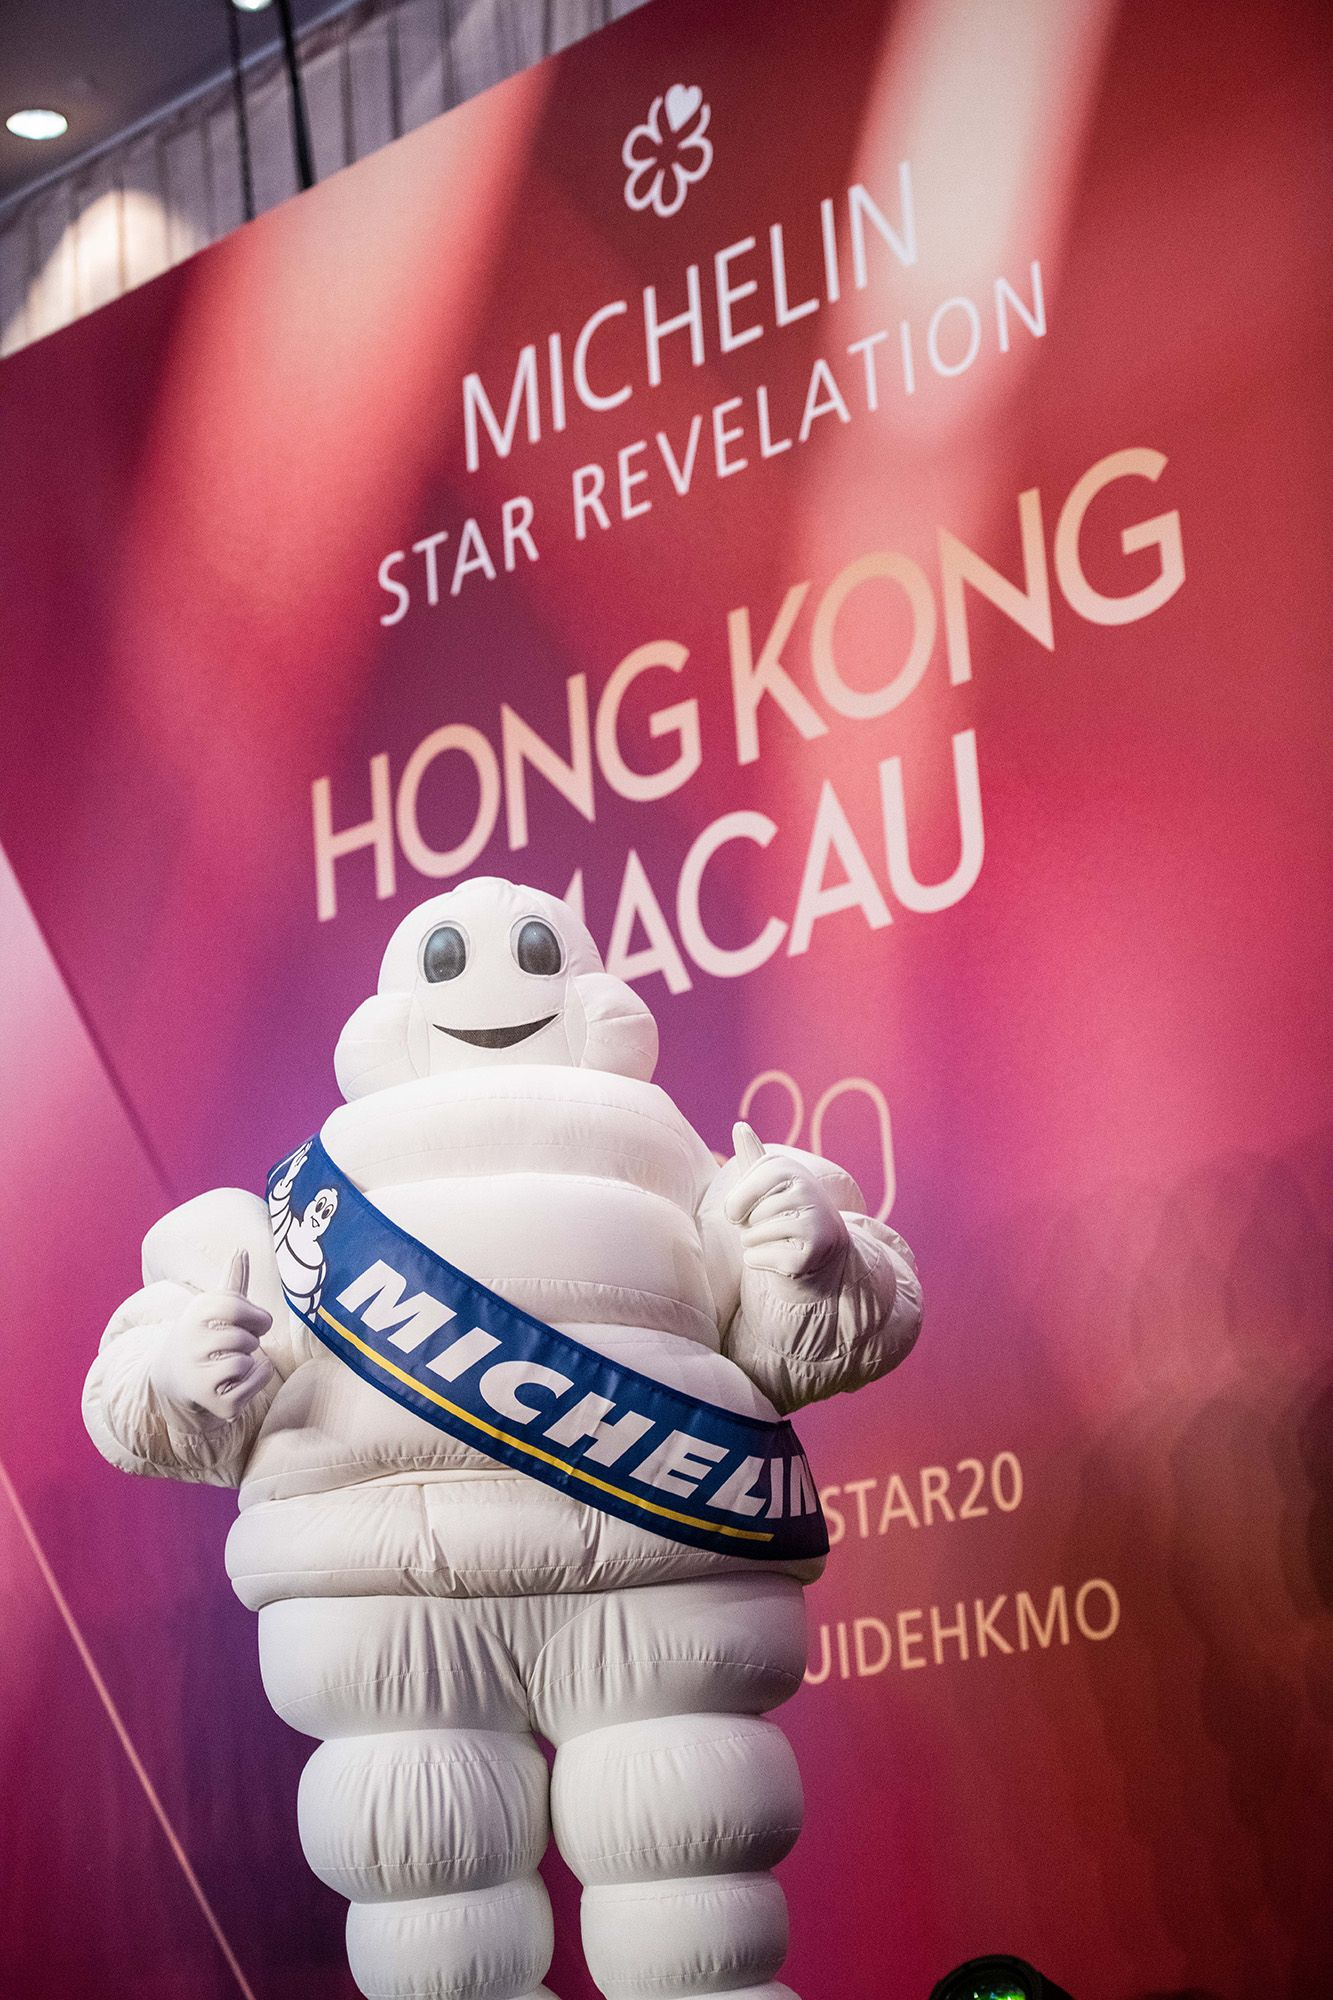 The Michelin Guide Announces All The Michelin-Starred Restaurants In Hong Kong And Macau For 2020